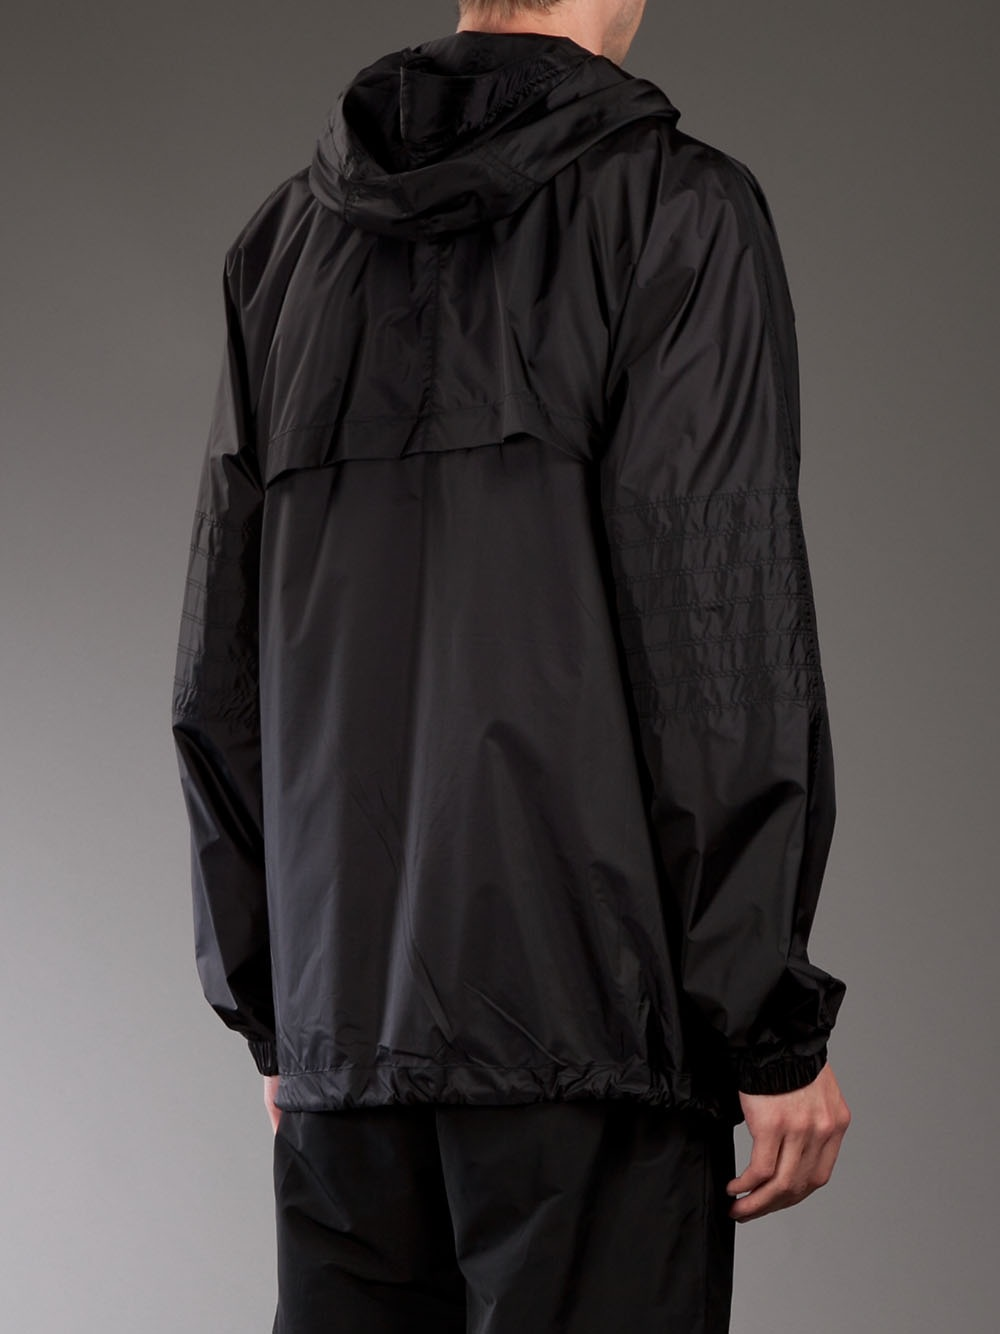 Givenchy Waterproof Jacket in Black for Men